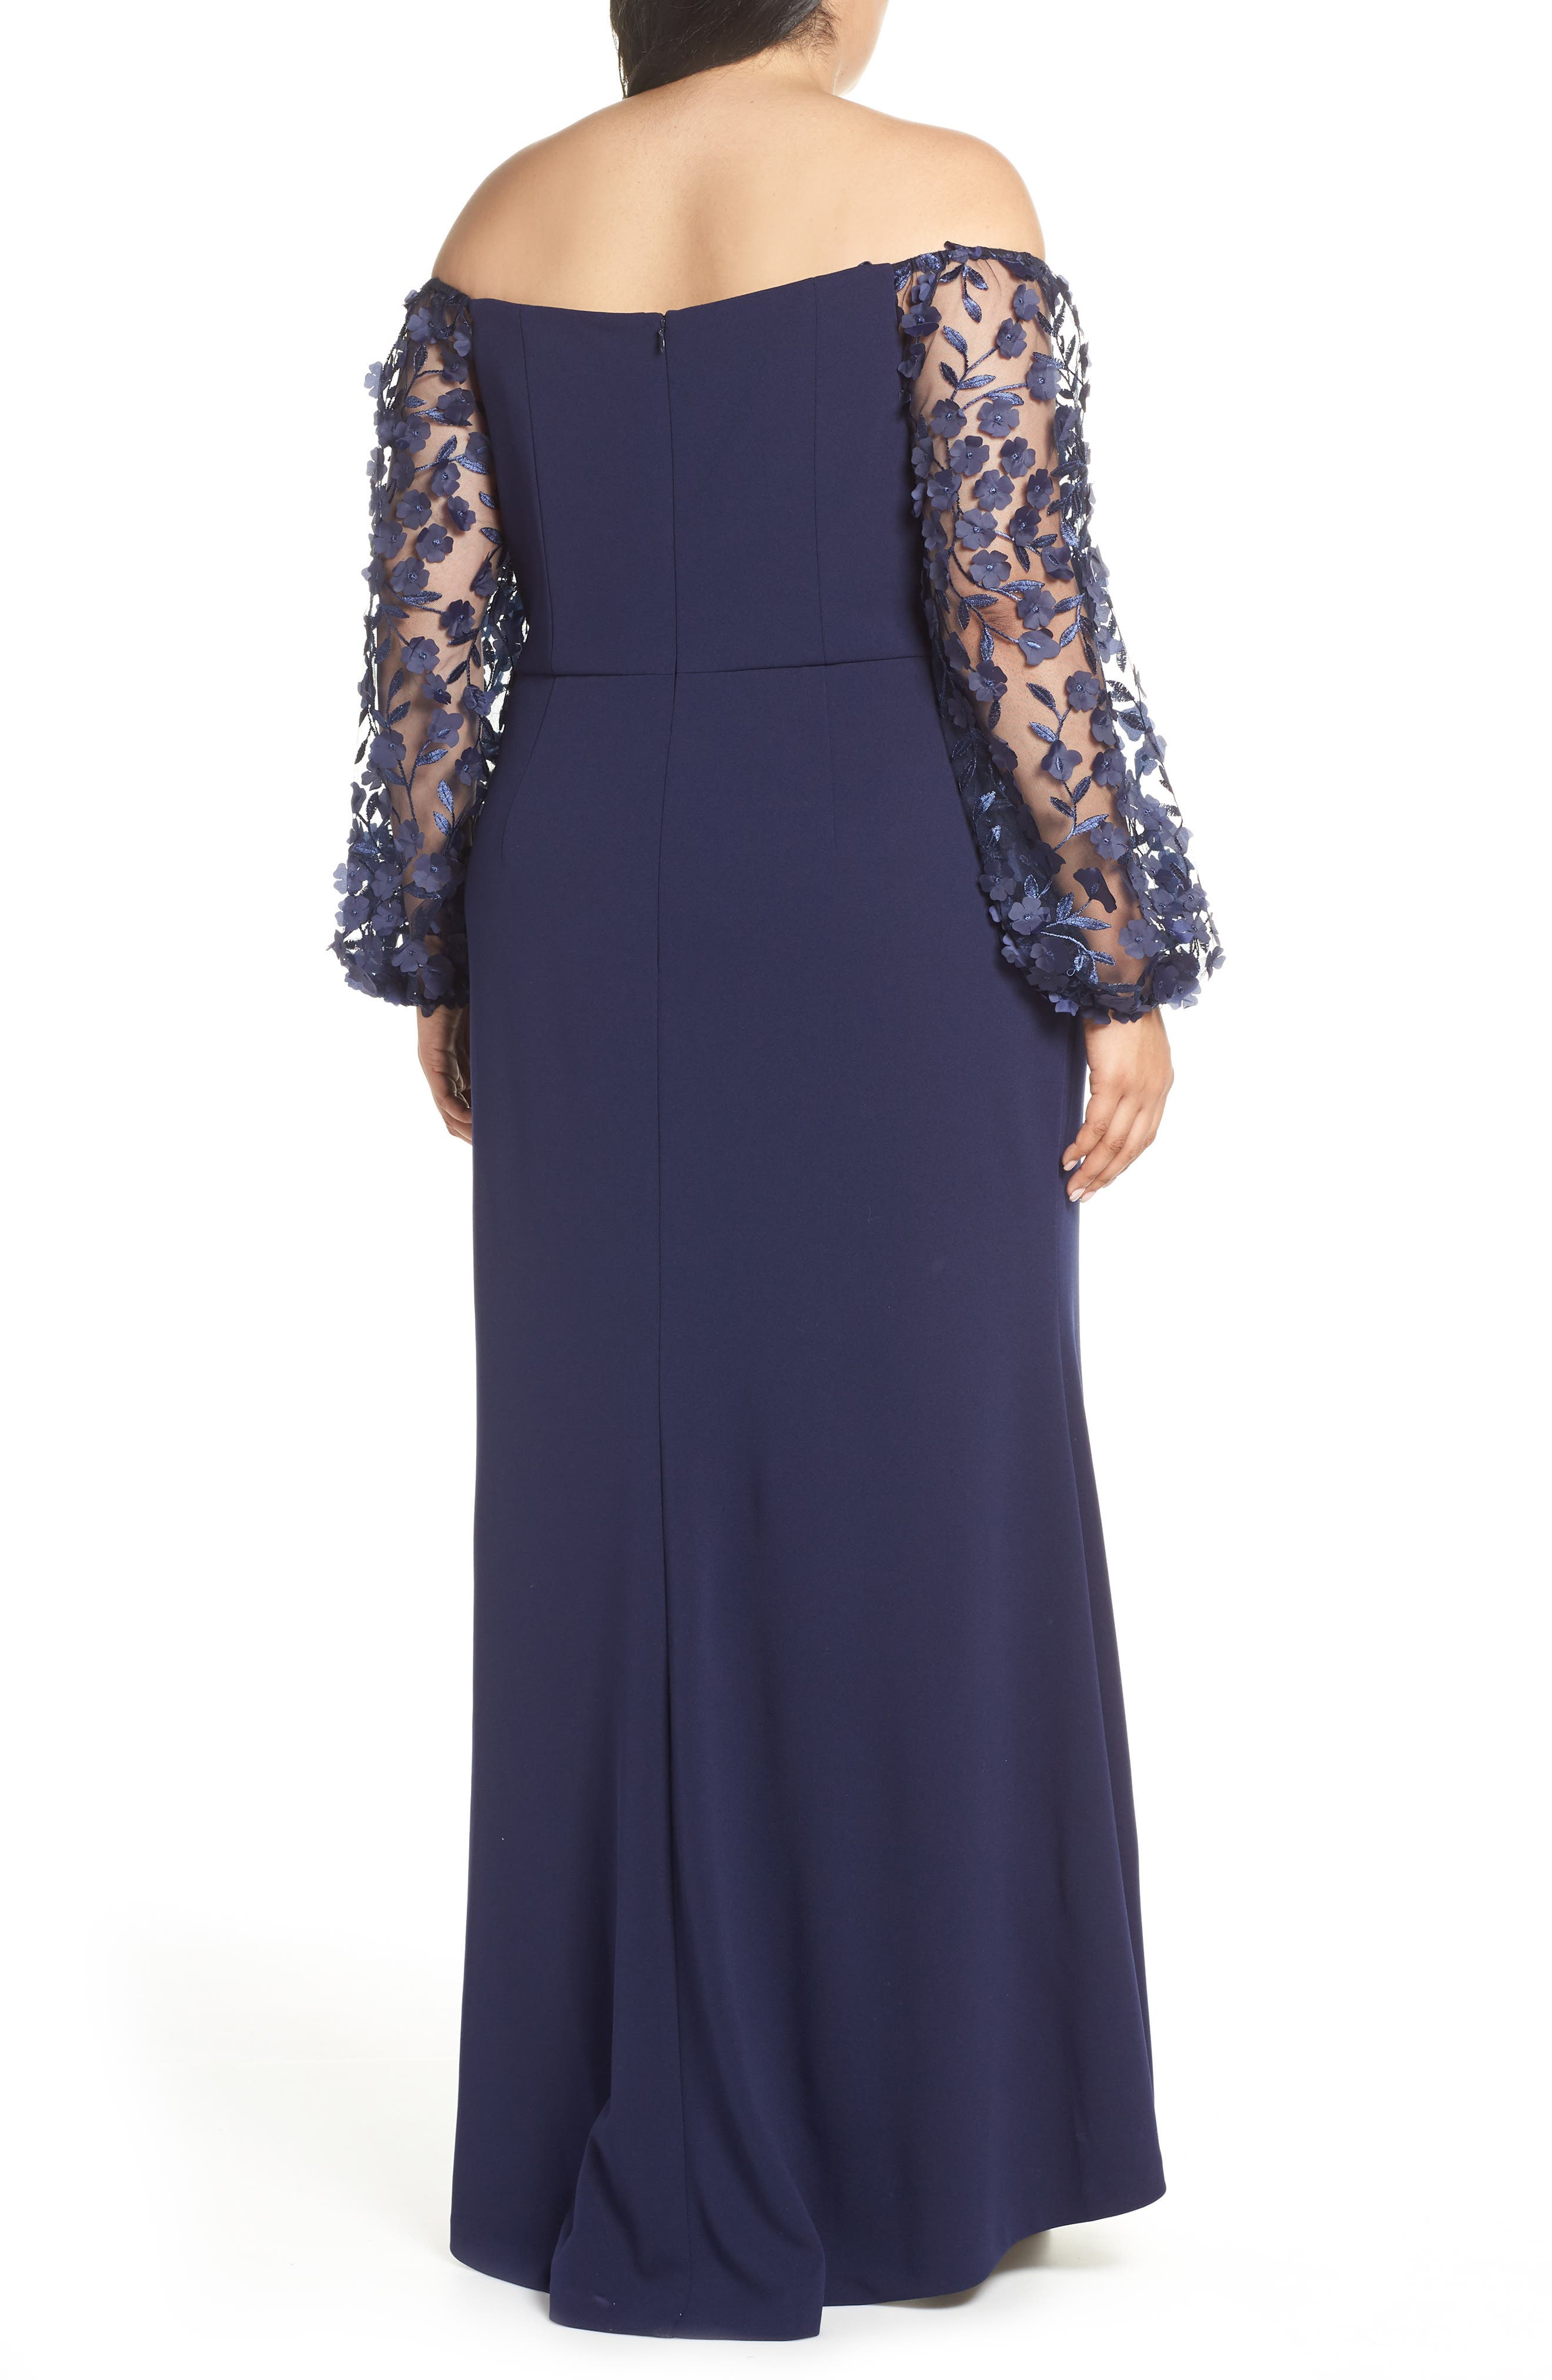 ELIZA J, Off the Shoulder 3D Floral Sleeve Scuba Crepe Evening Dress, Alternate thumbnail 2, color, NAVY